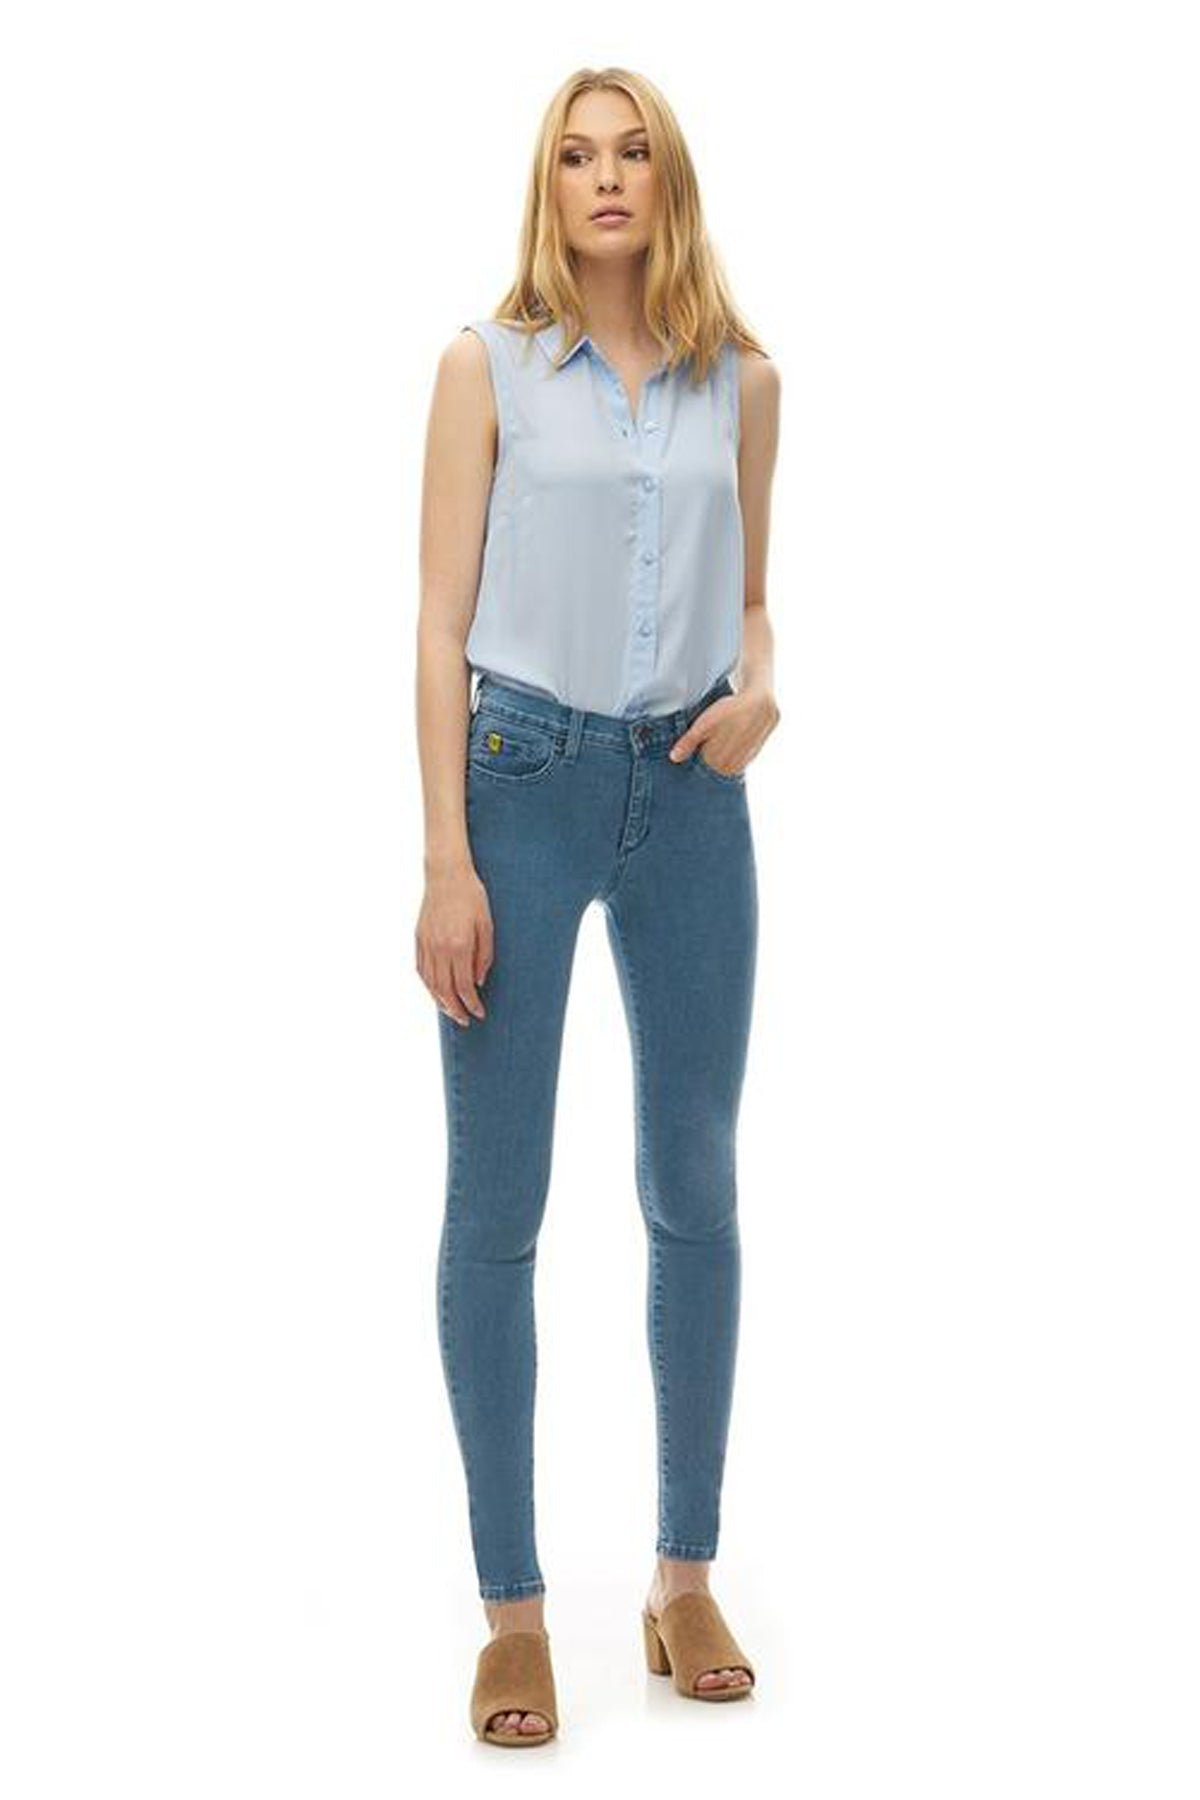 RACHEL Classic Rise Skinny Yoga Jean in Beach House, skinny jean, 30 inch inseam, light blue colour, sizes 24-34, made in Canada